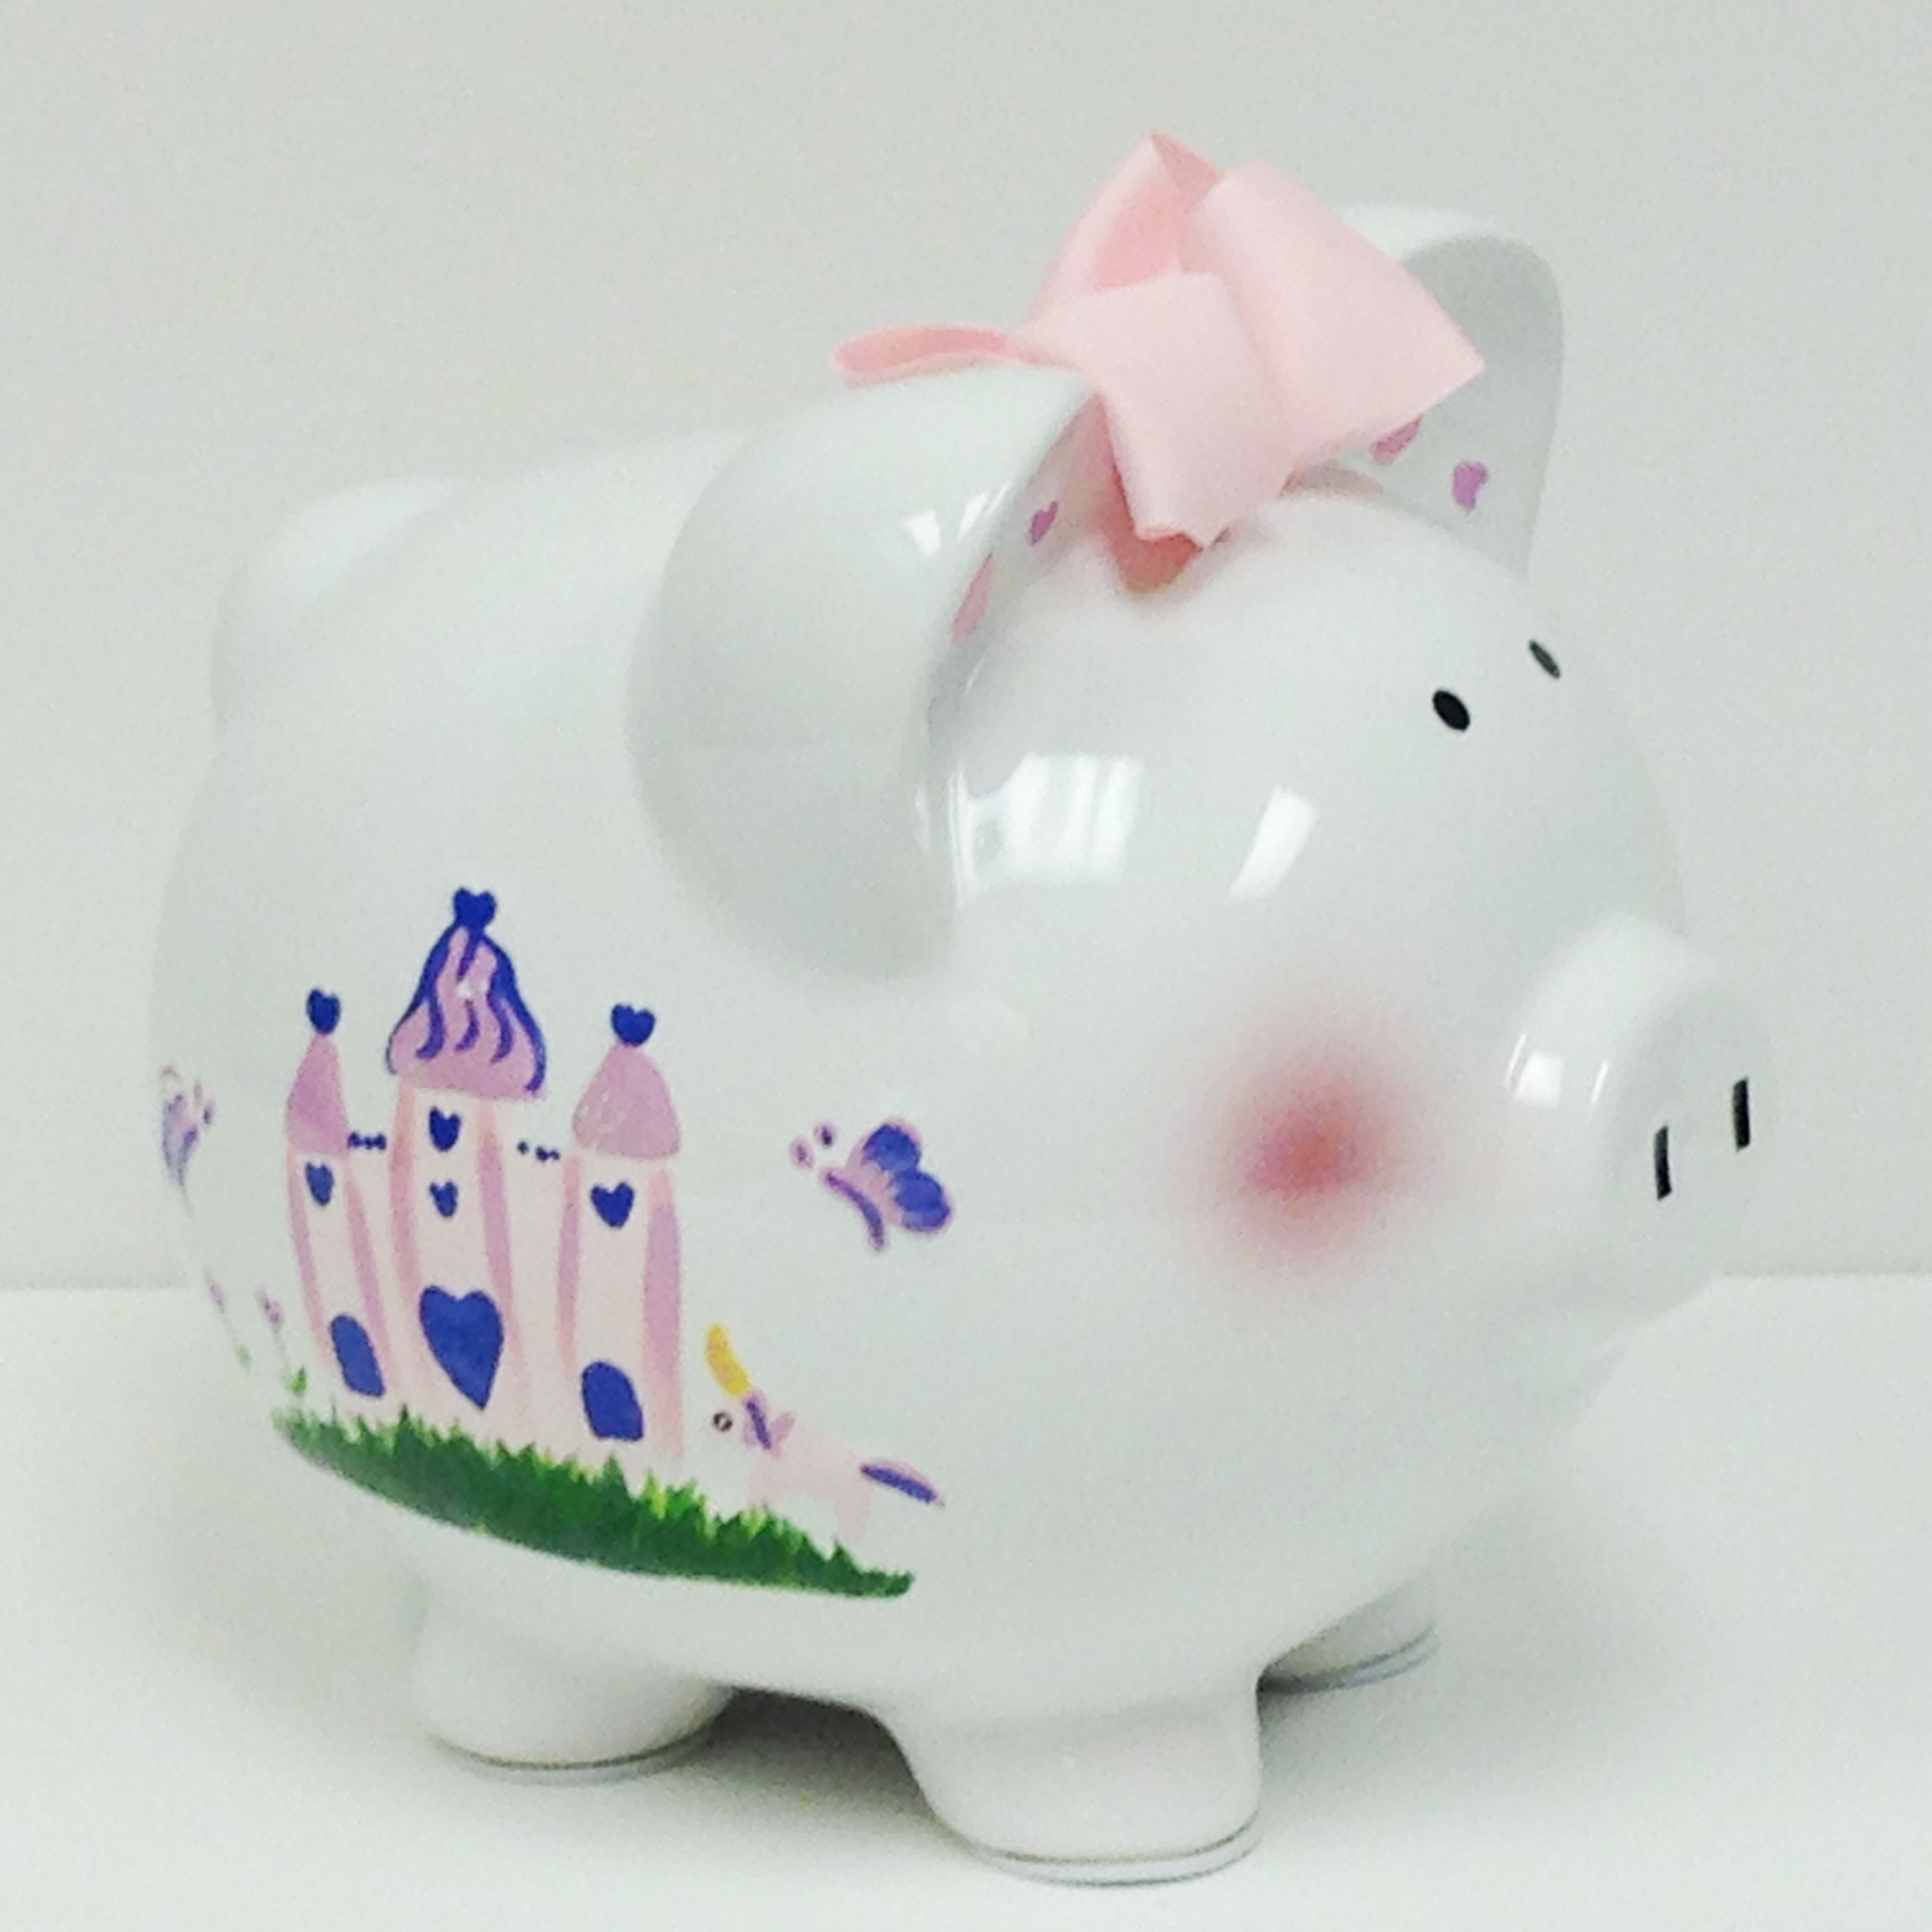 Baby Gift Piggy Bank : Piggy bank for baby the gift s at northside hospital